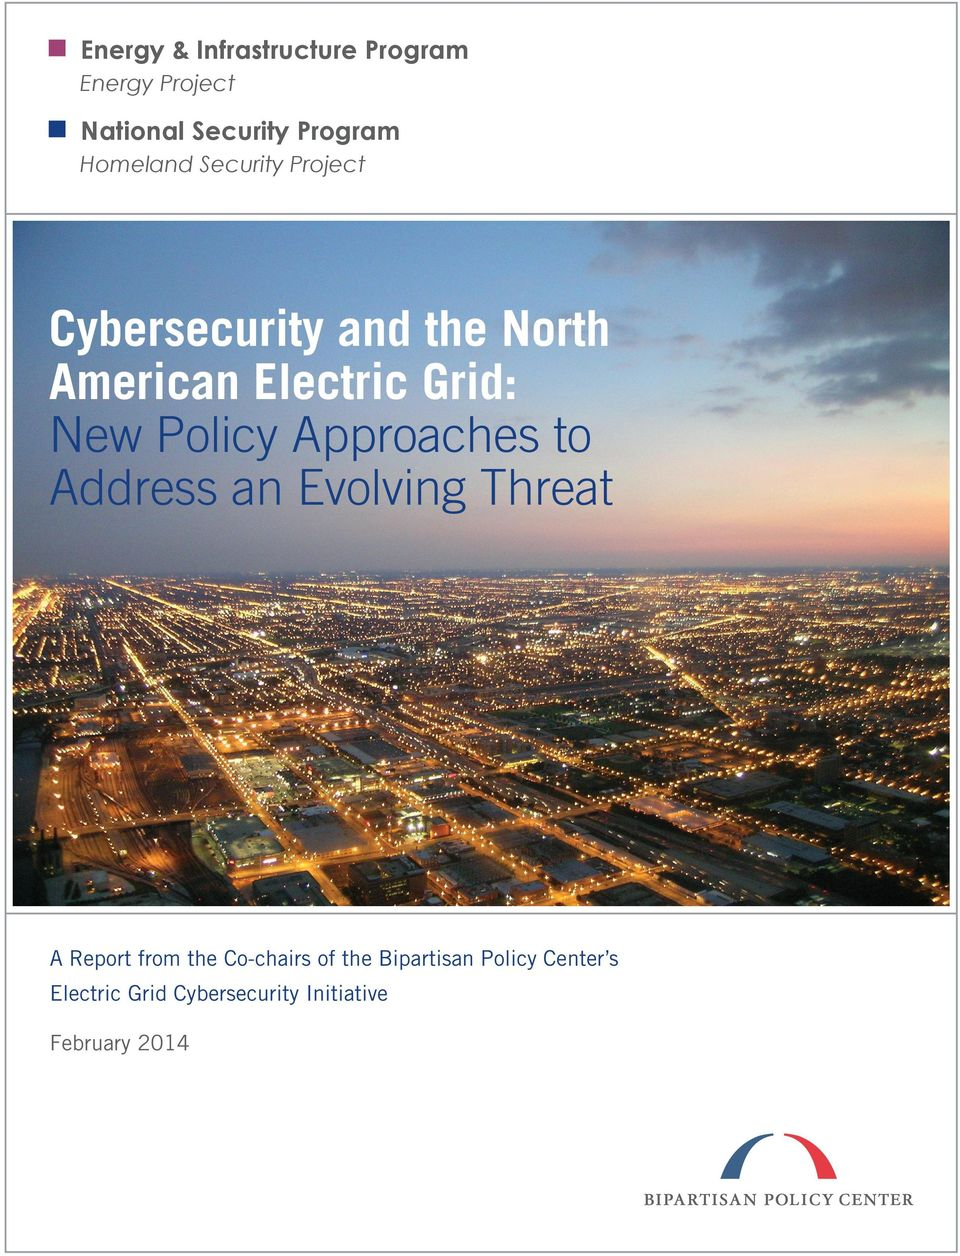 New Policy Approaches to Address an Evolving Threat A Report from the Co-chairs